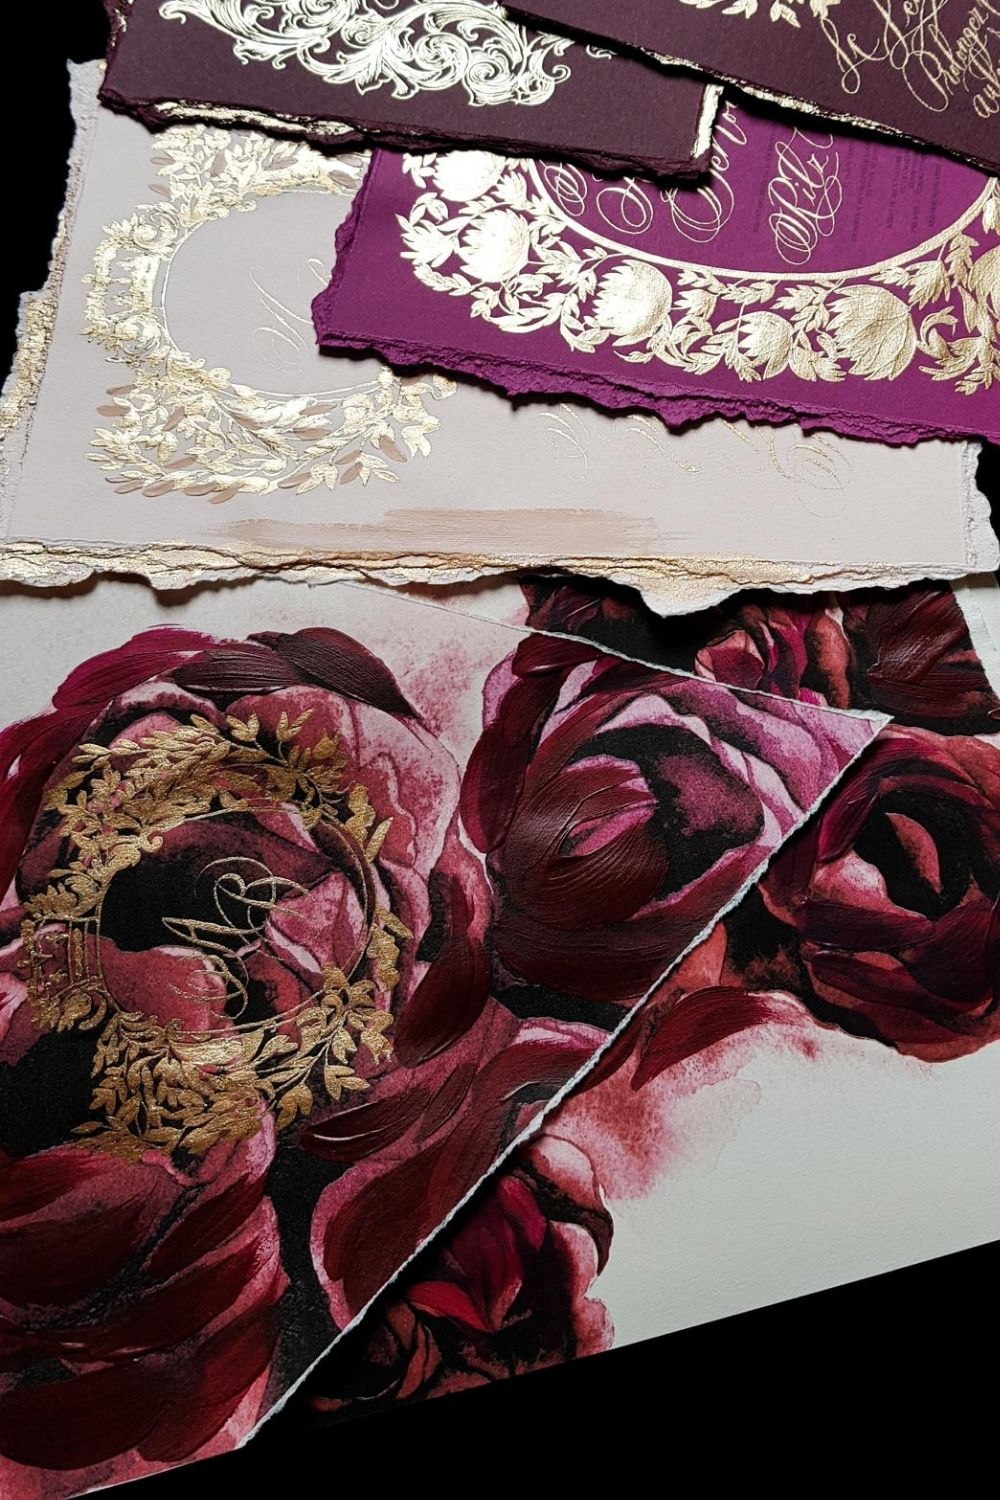 Fine art wedding invitations for a dramatic, bold, high-end red, pink and gold wedding in Paris